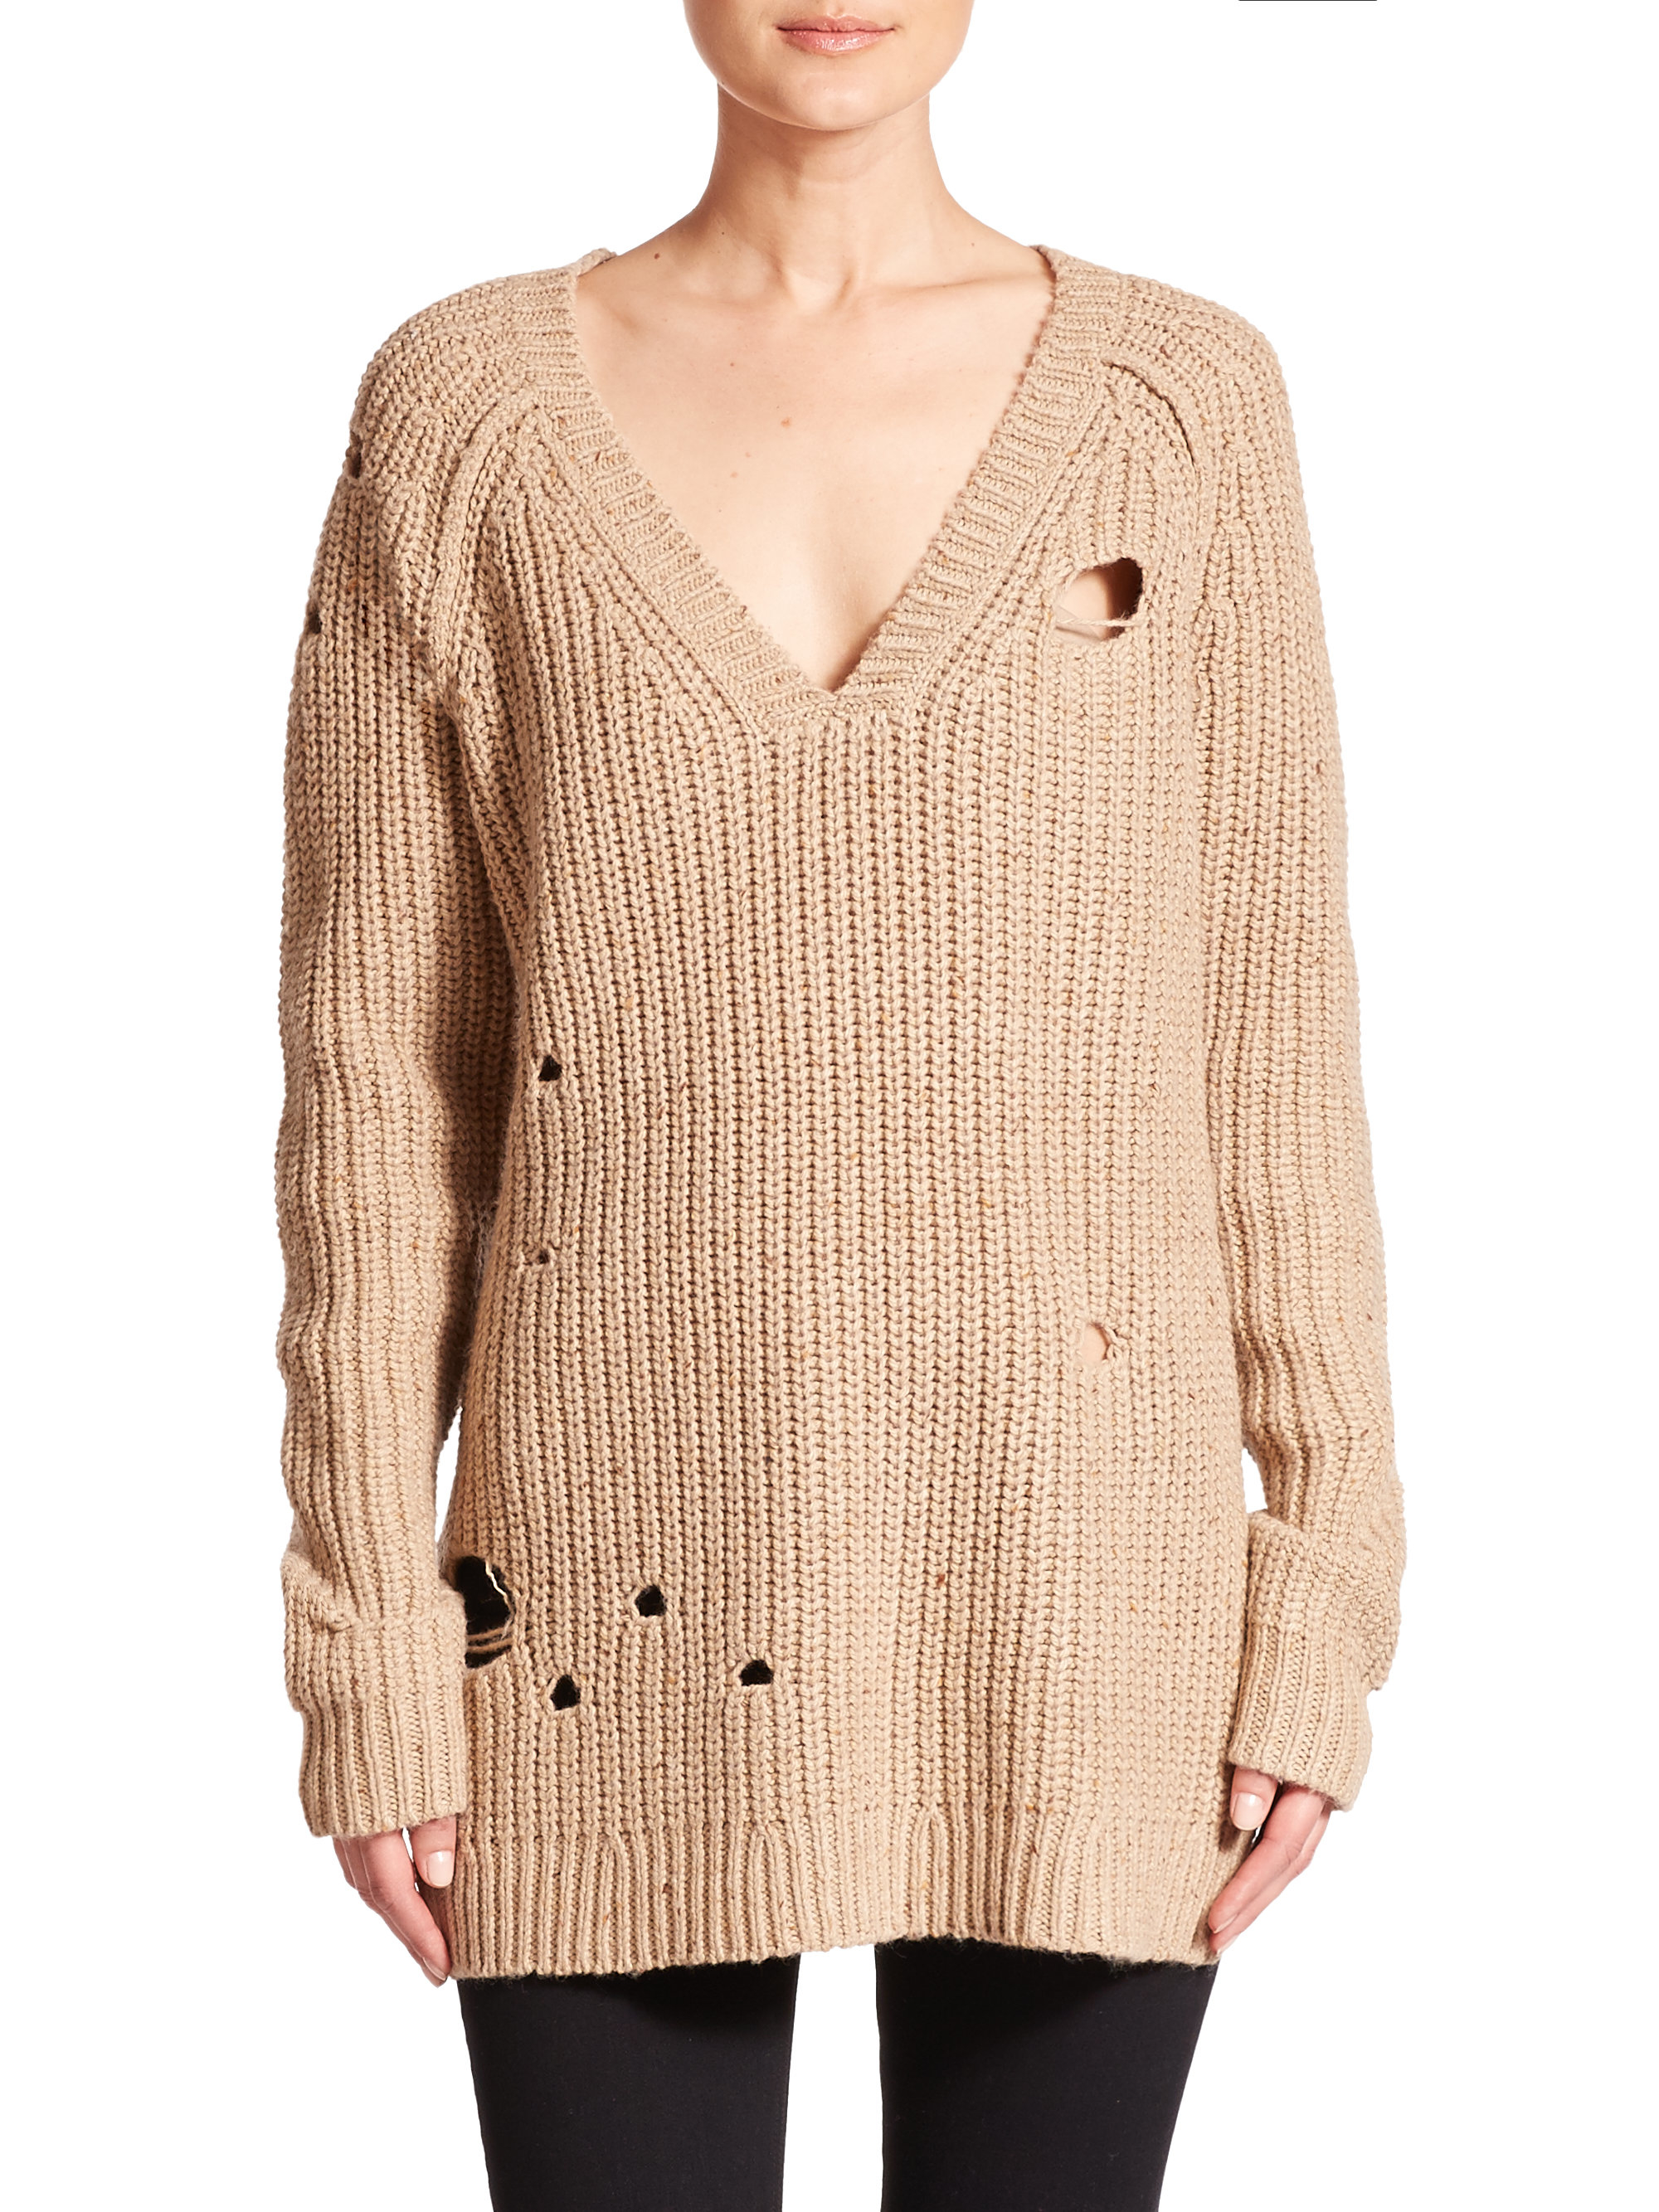 Wildfox Dusk Distressed Knit Tunic Sweater in Natural | Lyst